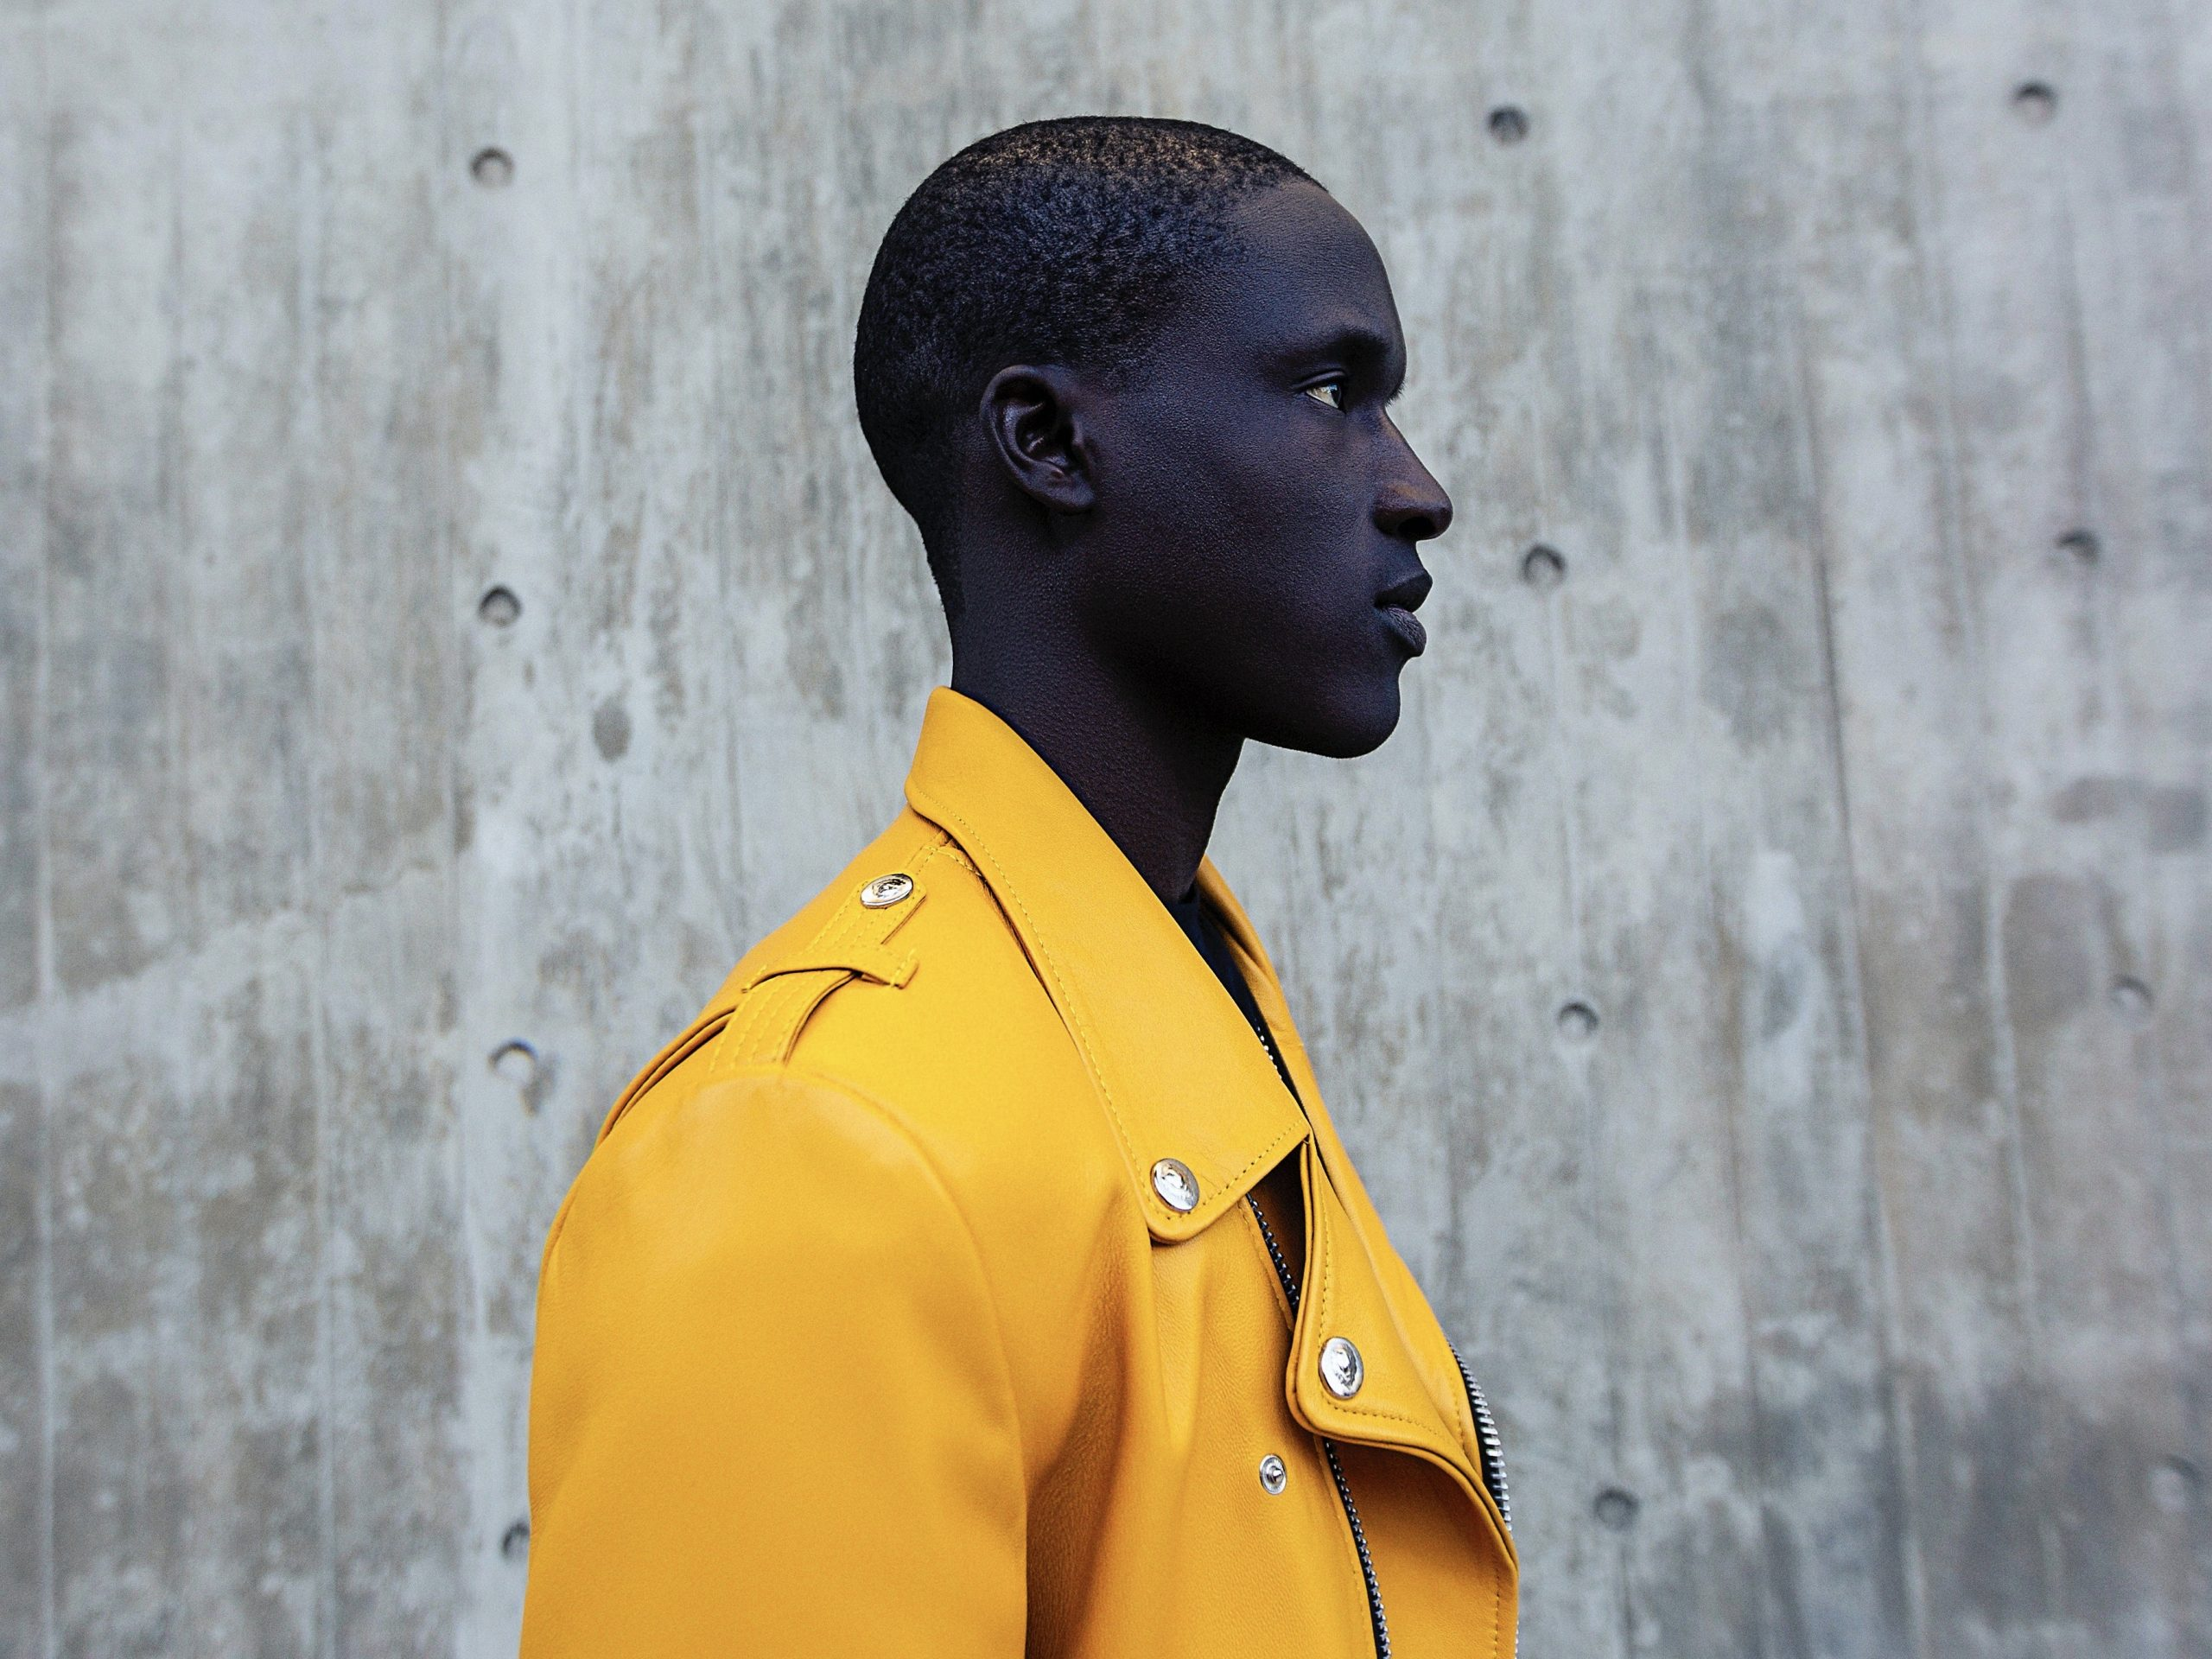 Top 5 Menswear Trends for Spring/Summer 2021